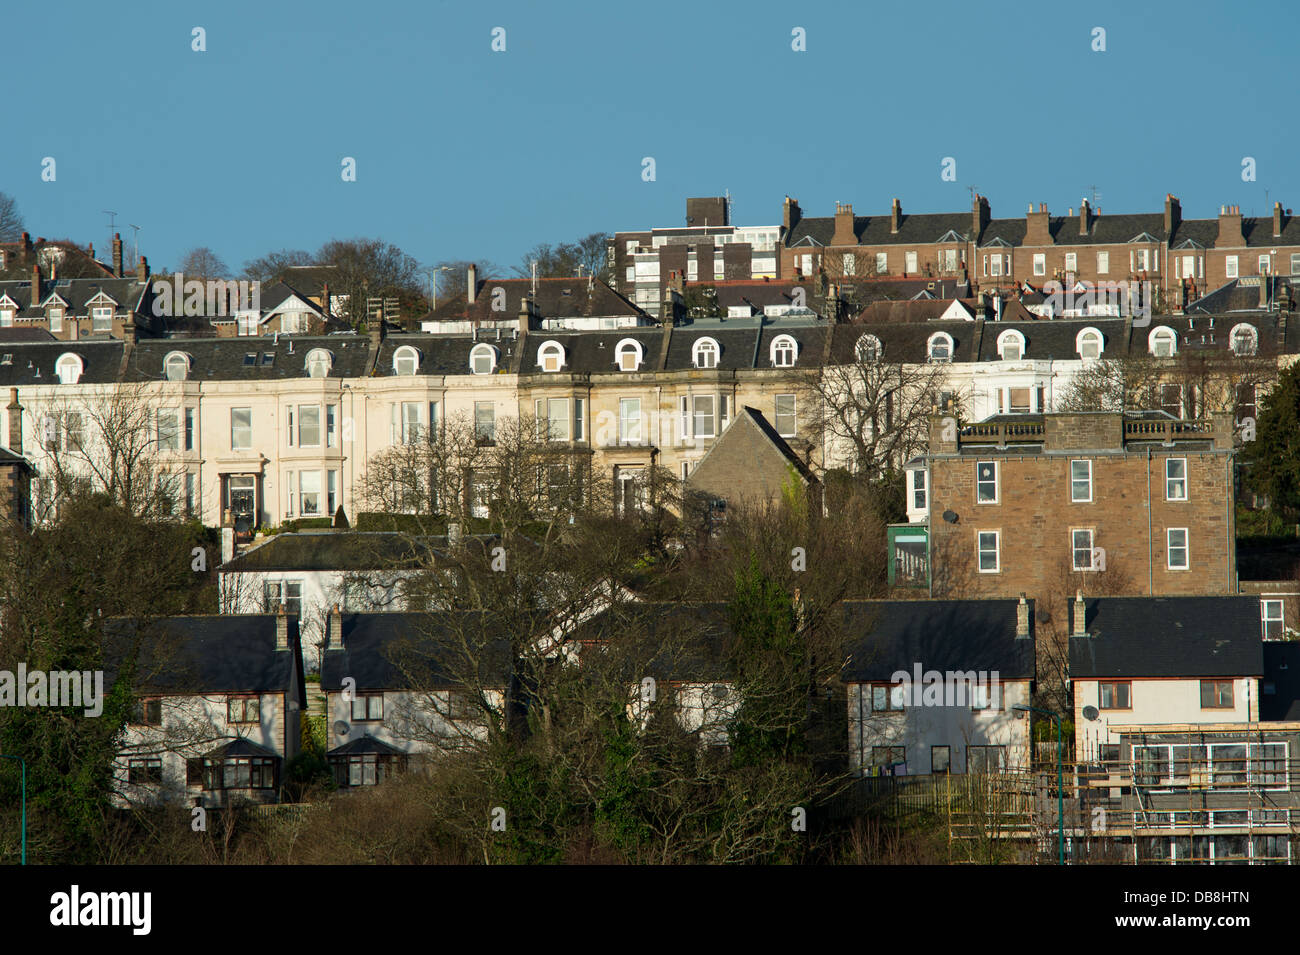 Rows of terraced houses in the city of Dundee, Scotland. - Stock Image